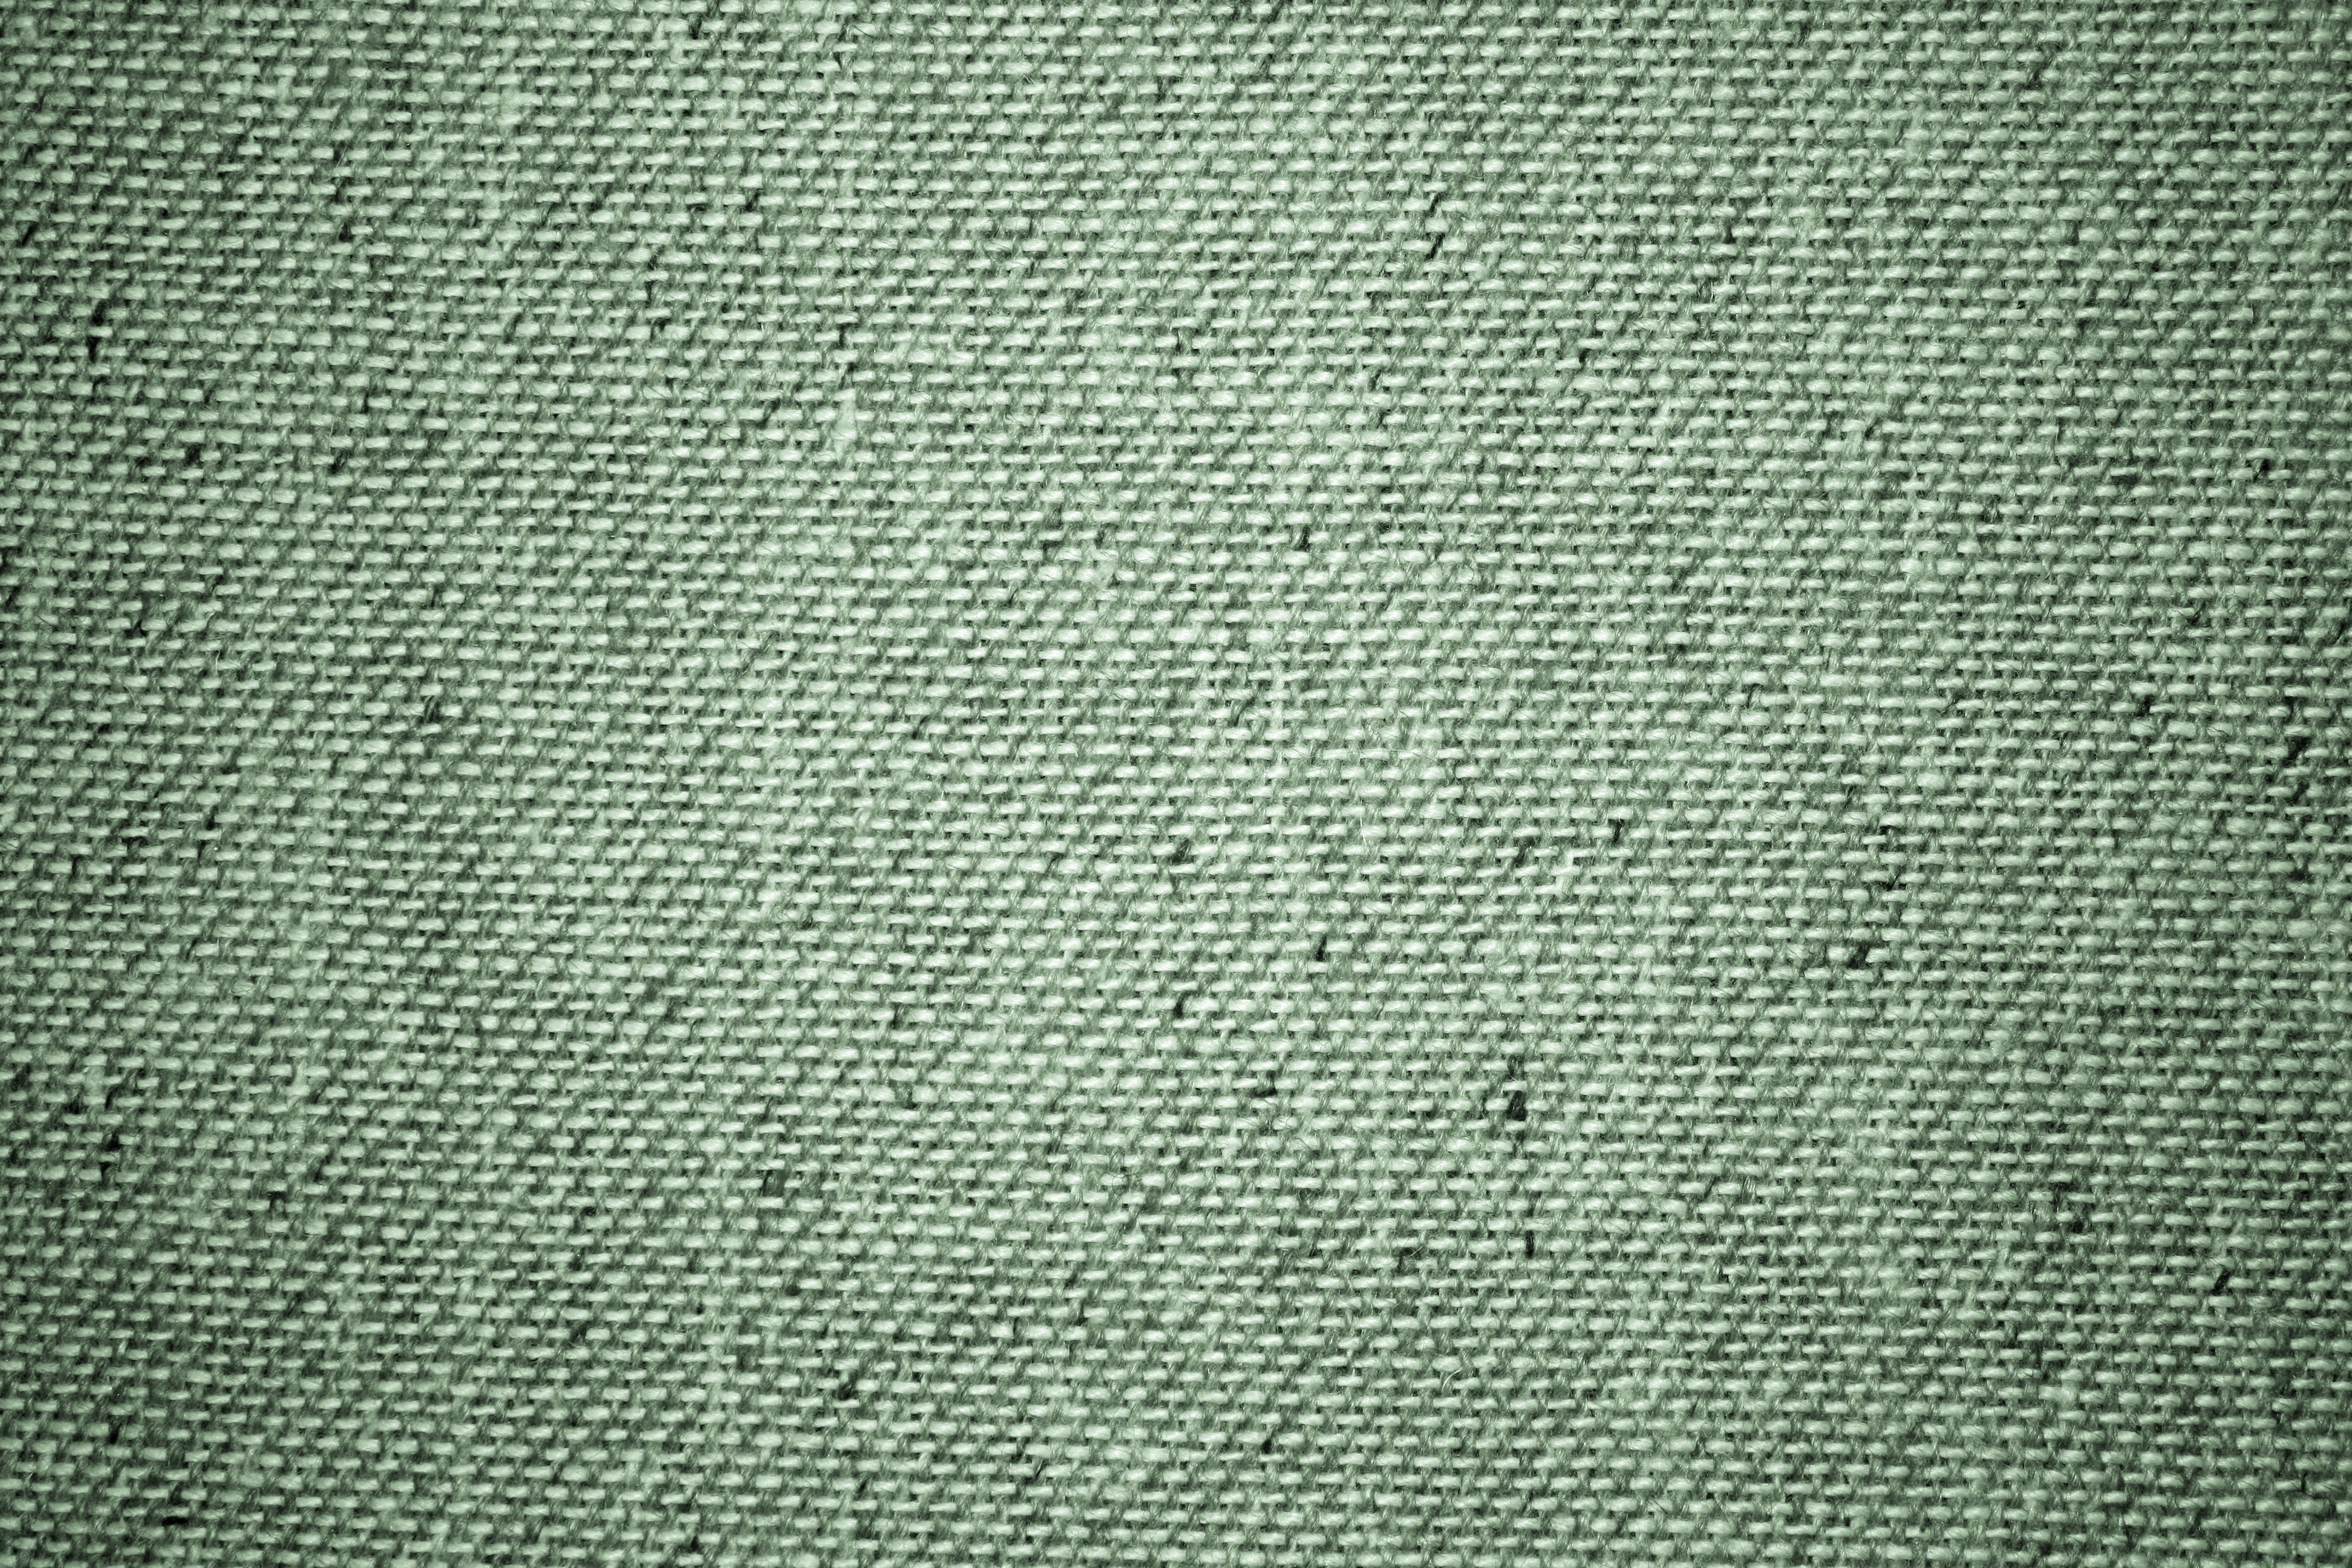 Sage Green Upholstery Fabric Close Up Texture Picture